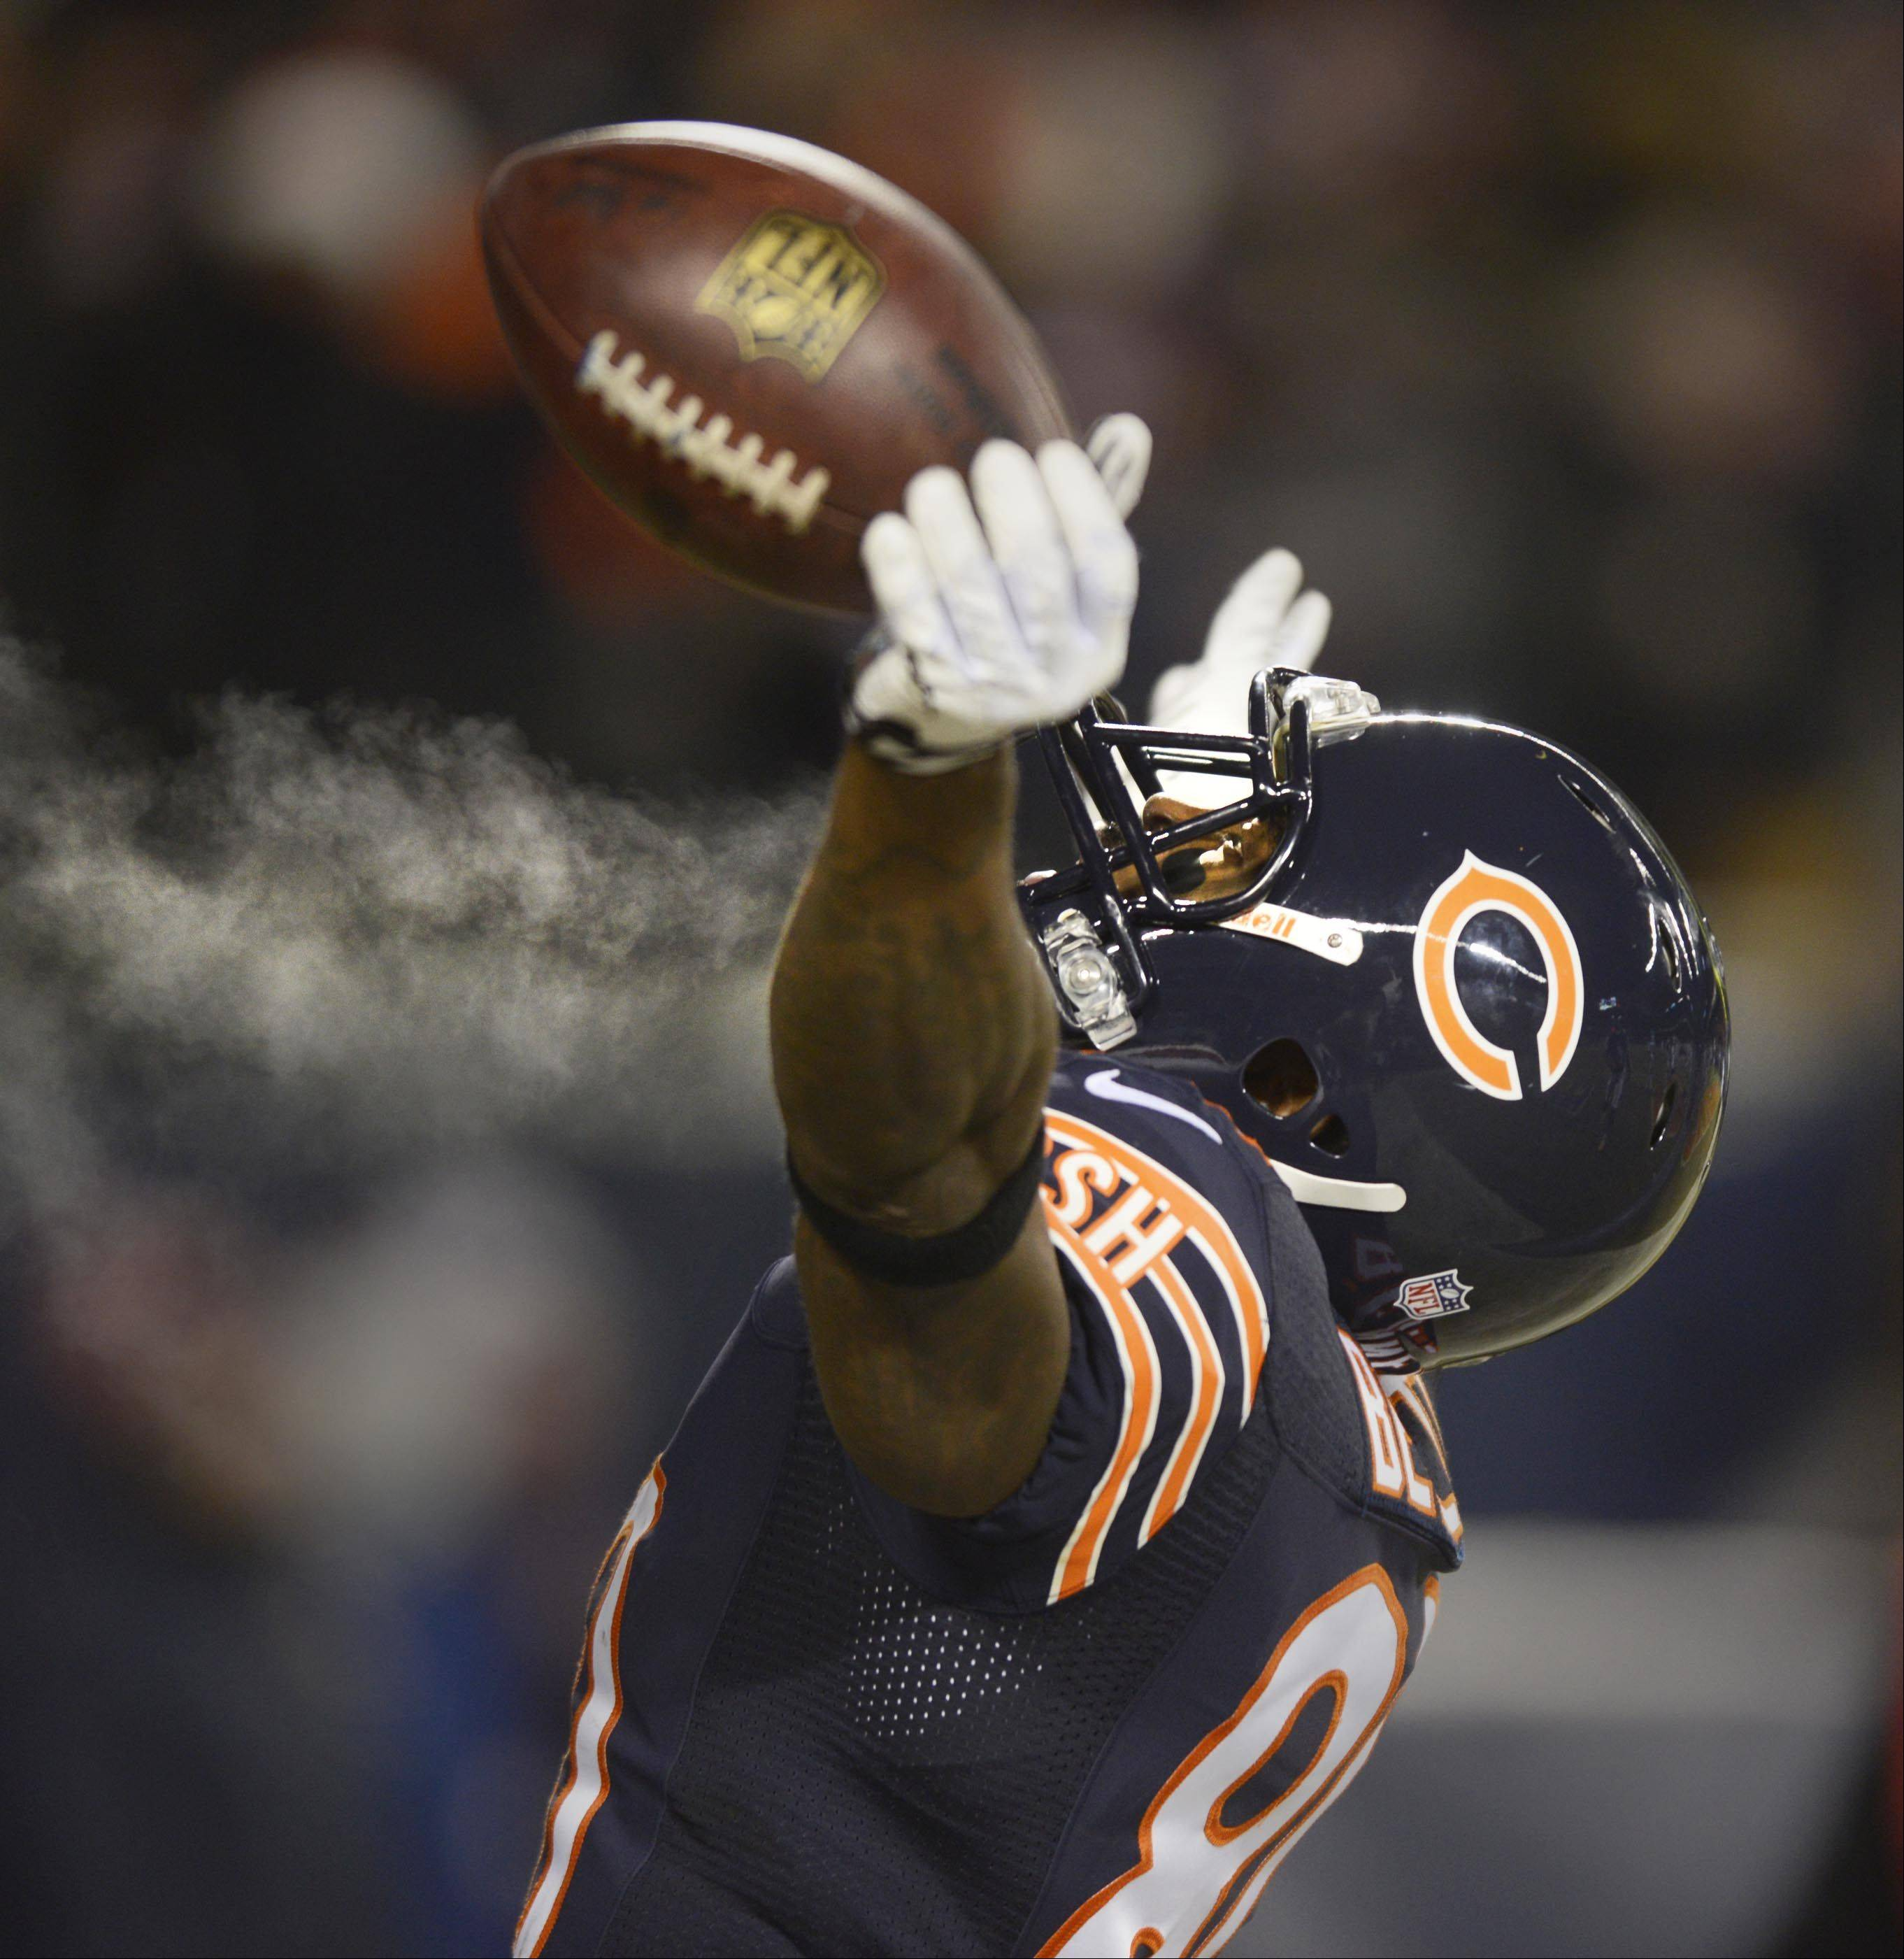 Chicago Bears wide receiver Earl Bennett celebrates his first-quarter touchdown.